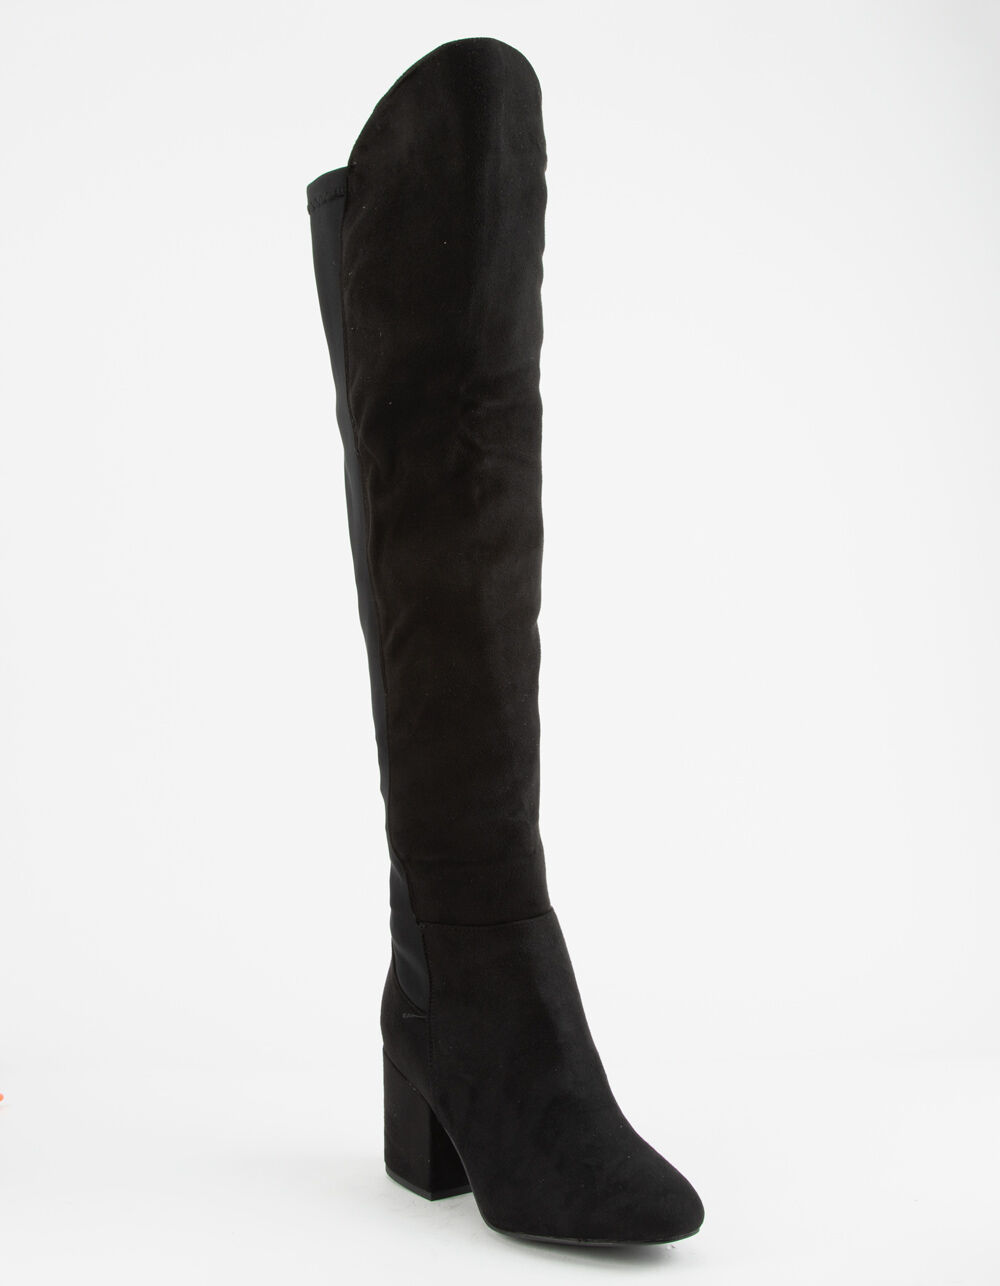 WILD DIVA Faux Suede Stretch Black Over The Knee Boots